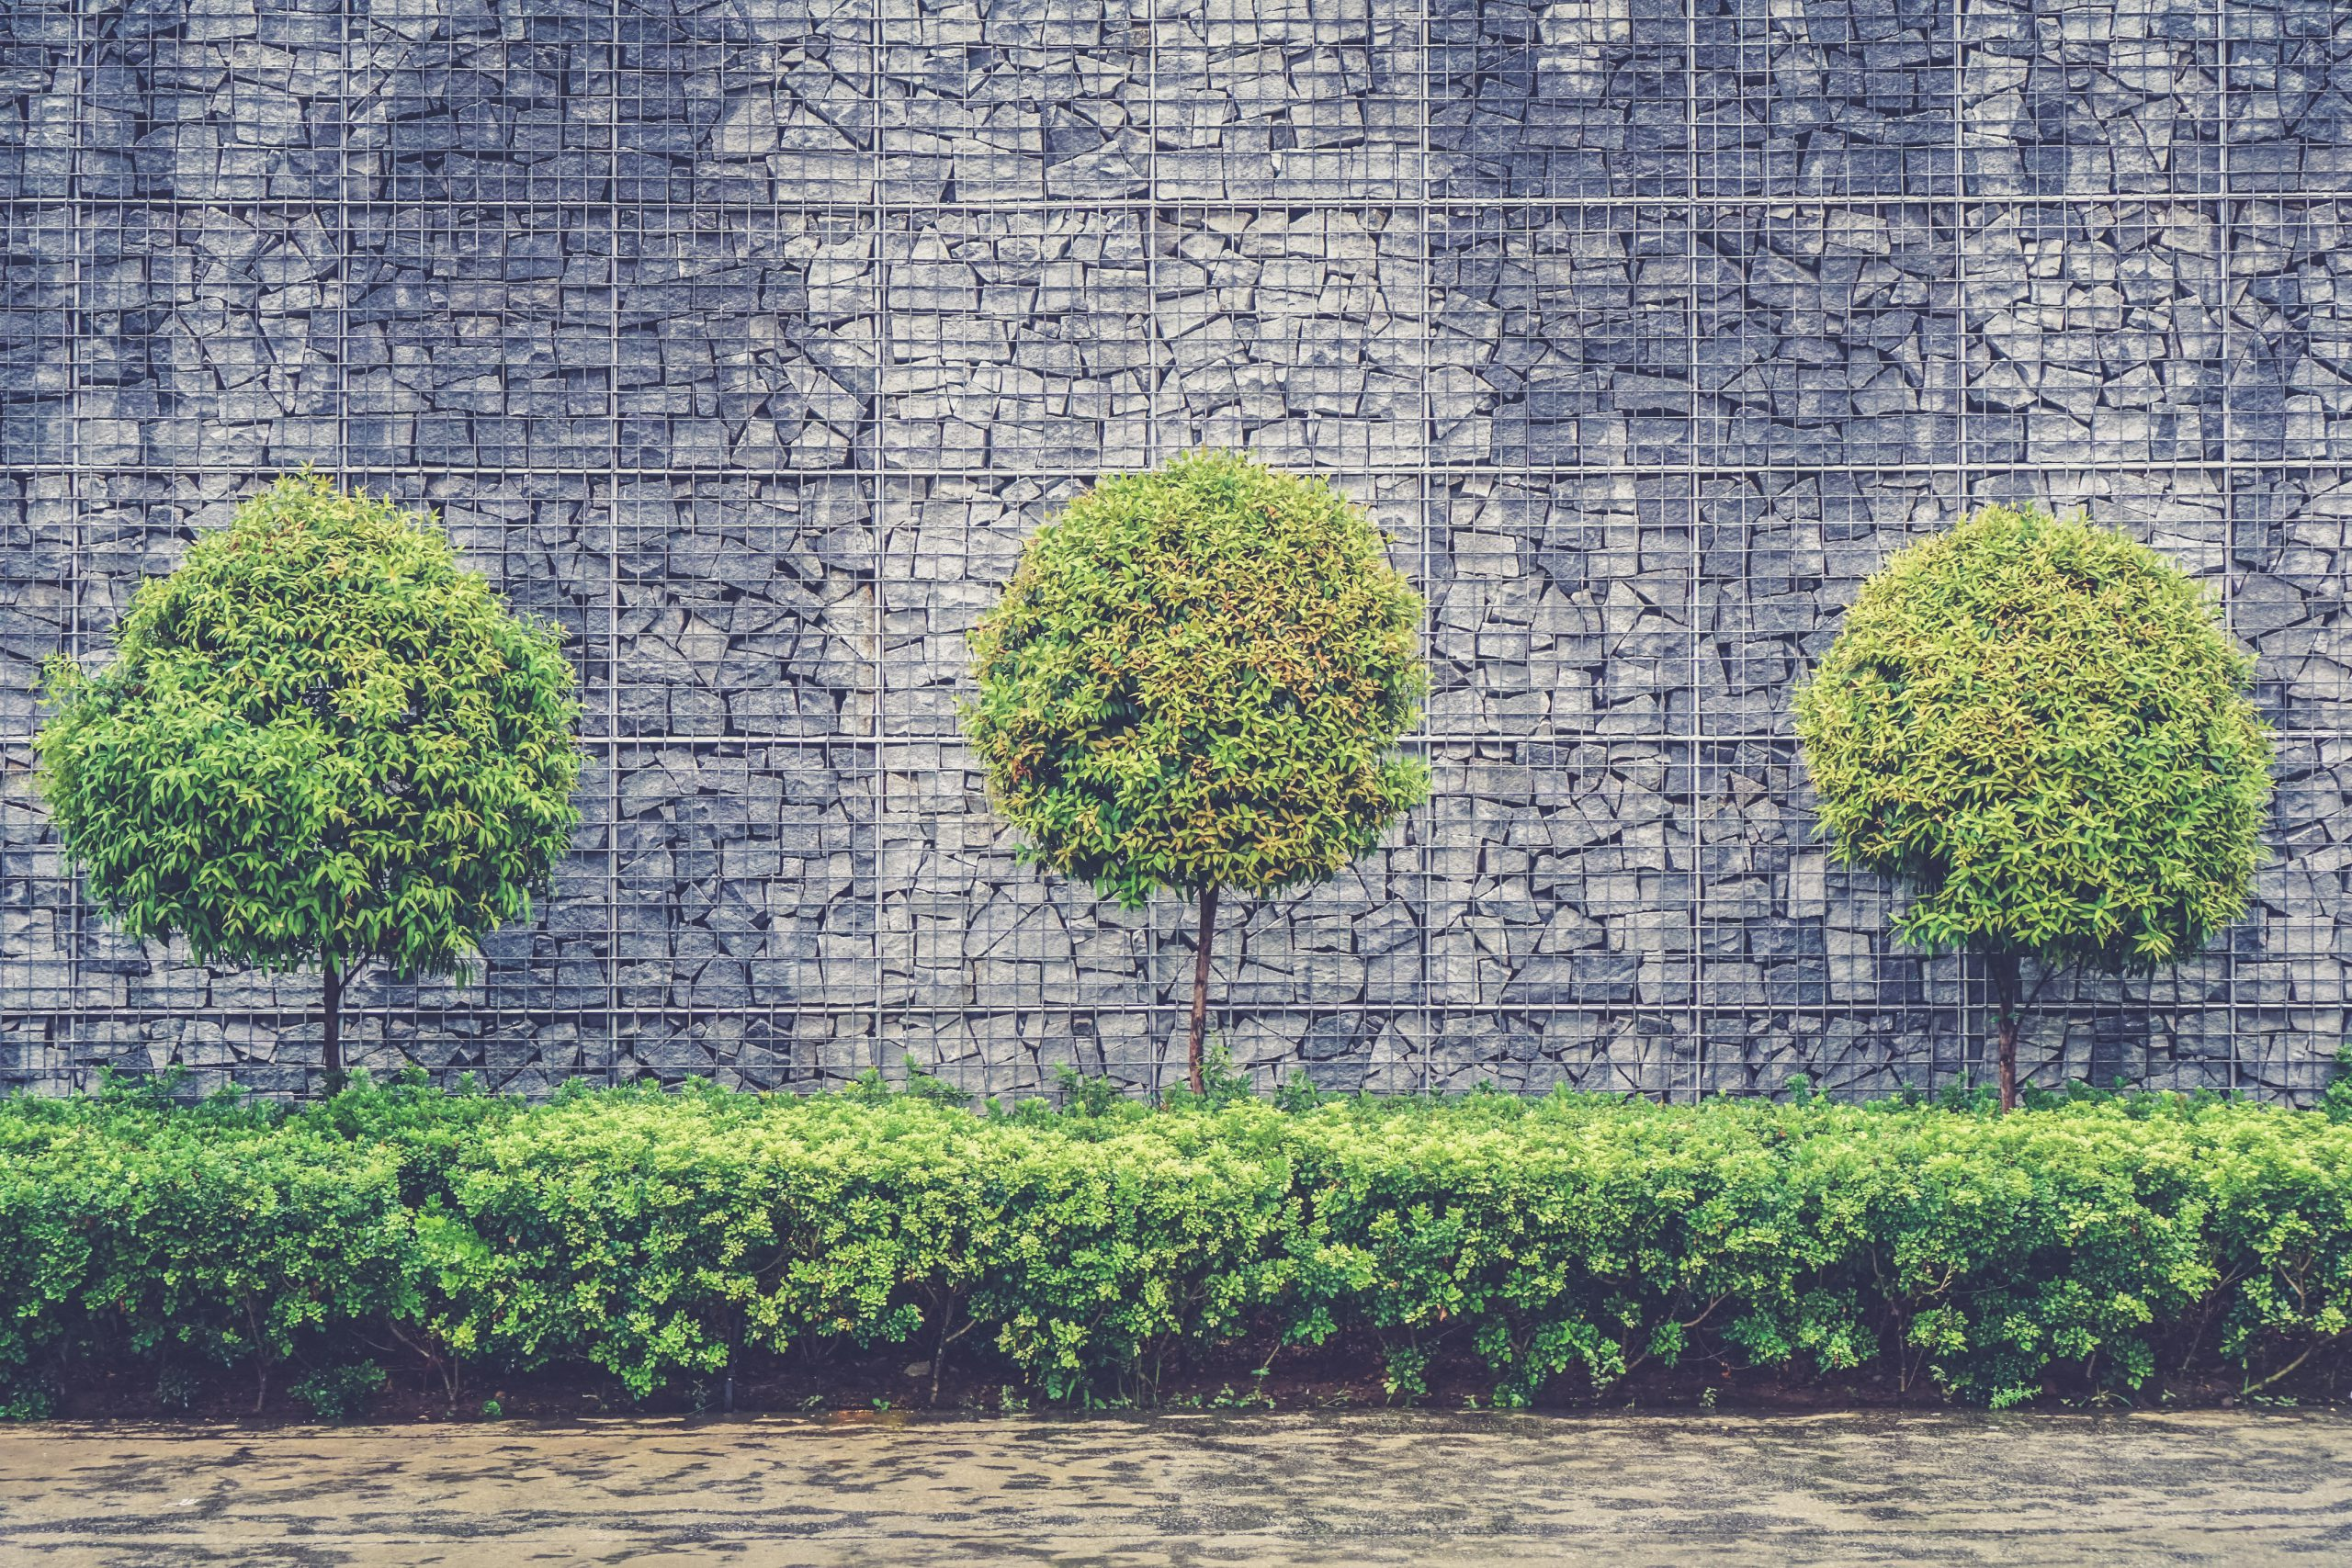 Waterproofing Retaining Walls – Top Tips from Experts